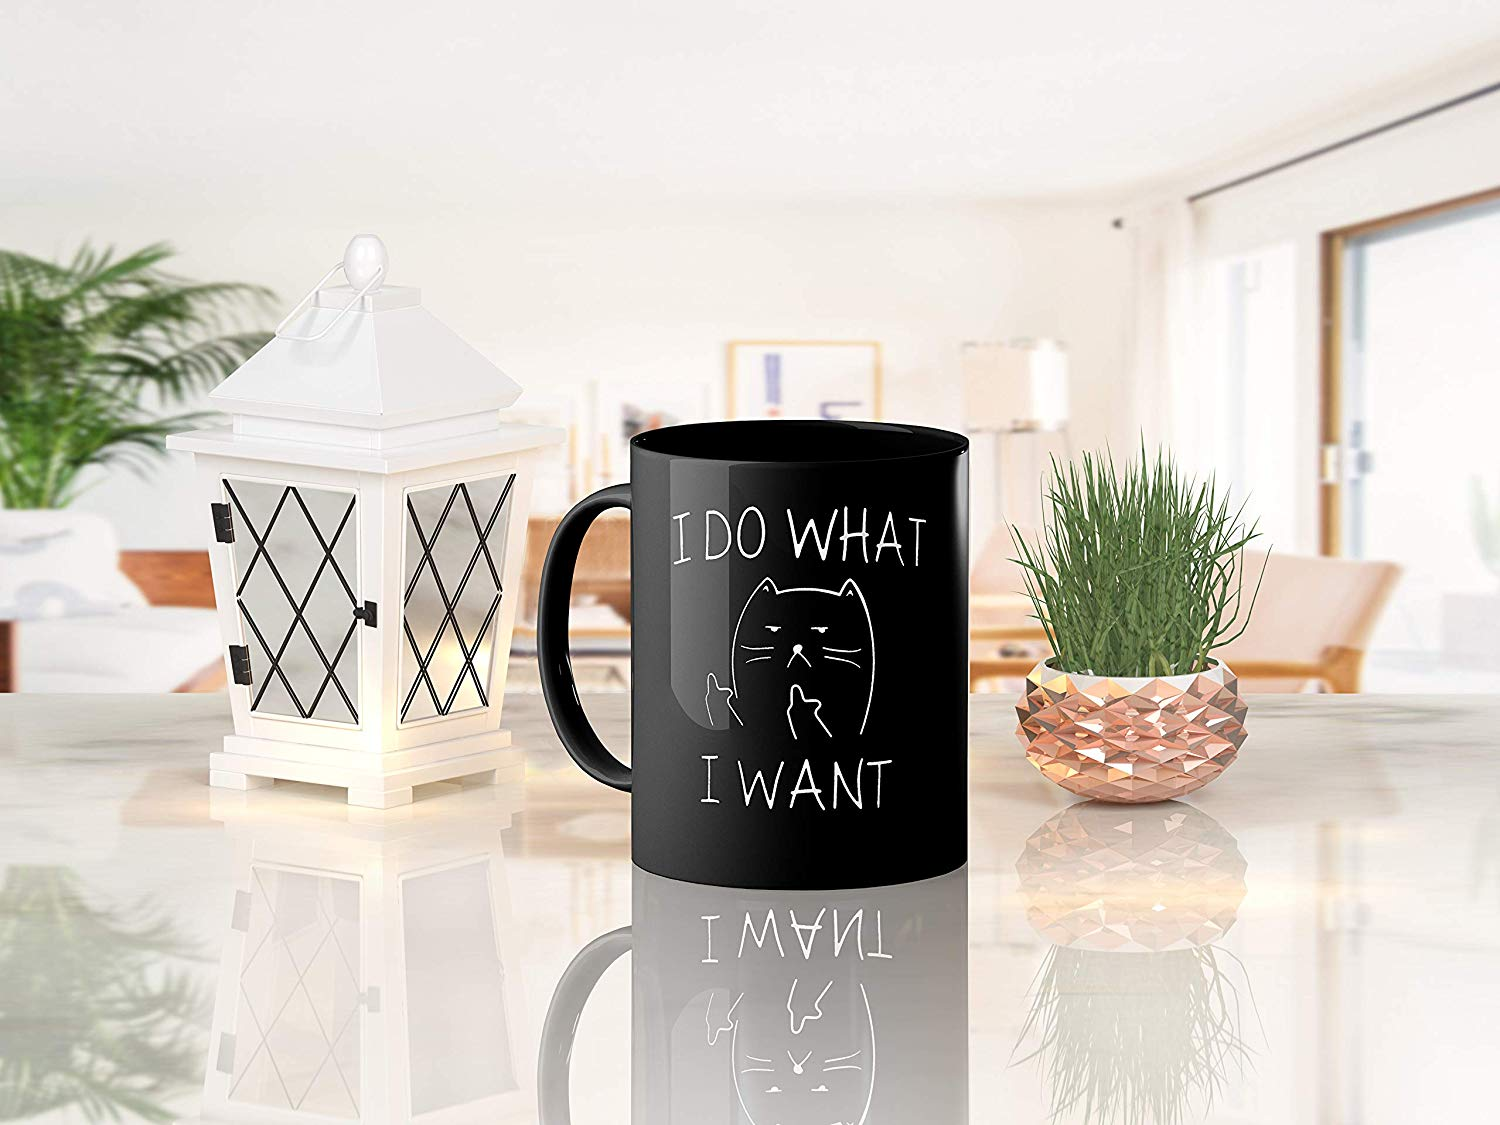 I Do What I Want Funny Coffee Mug Cat Middle Finger 11 Oz Birthday Gift For Men Women Him Or Her B079FSTVY3 8